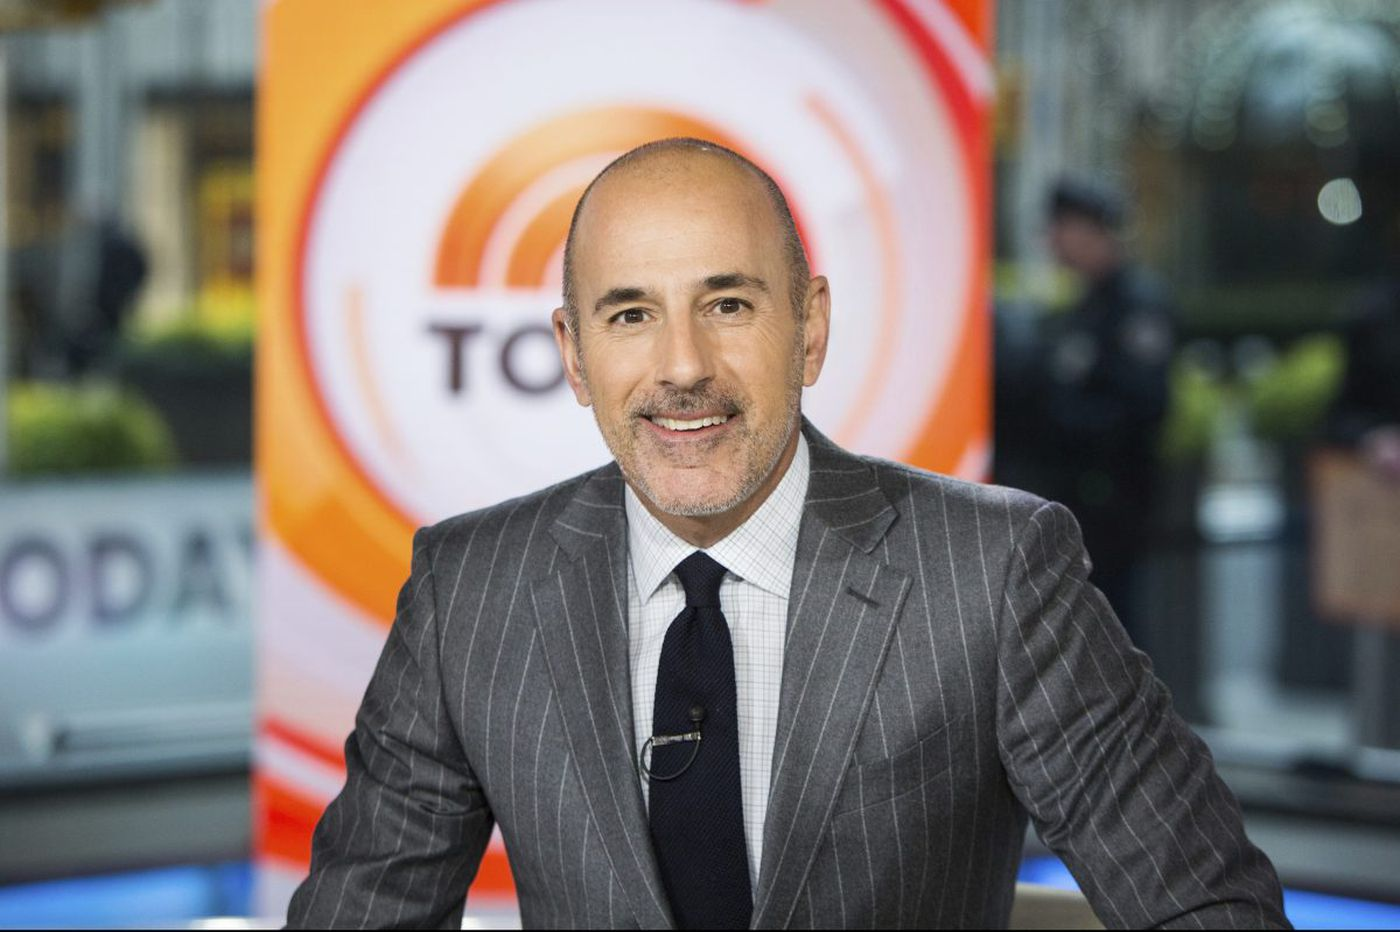 Matt Lauer has always been nice to me. How do I reconcile that with his bad behavior? | Lisa DePaulo